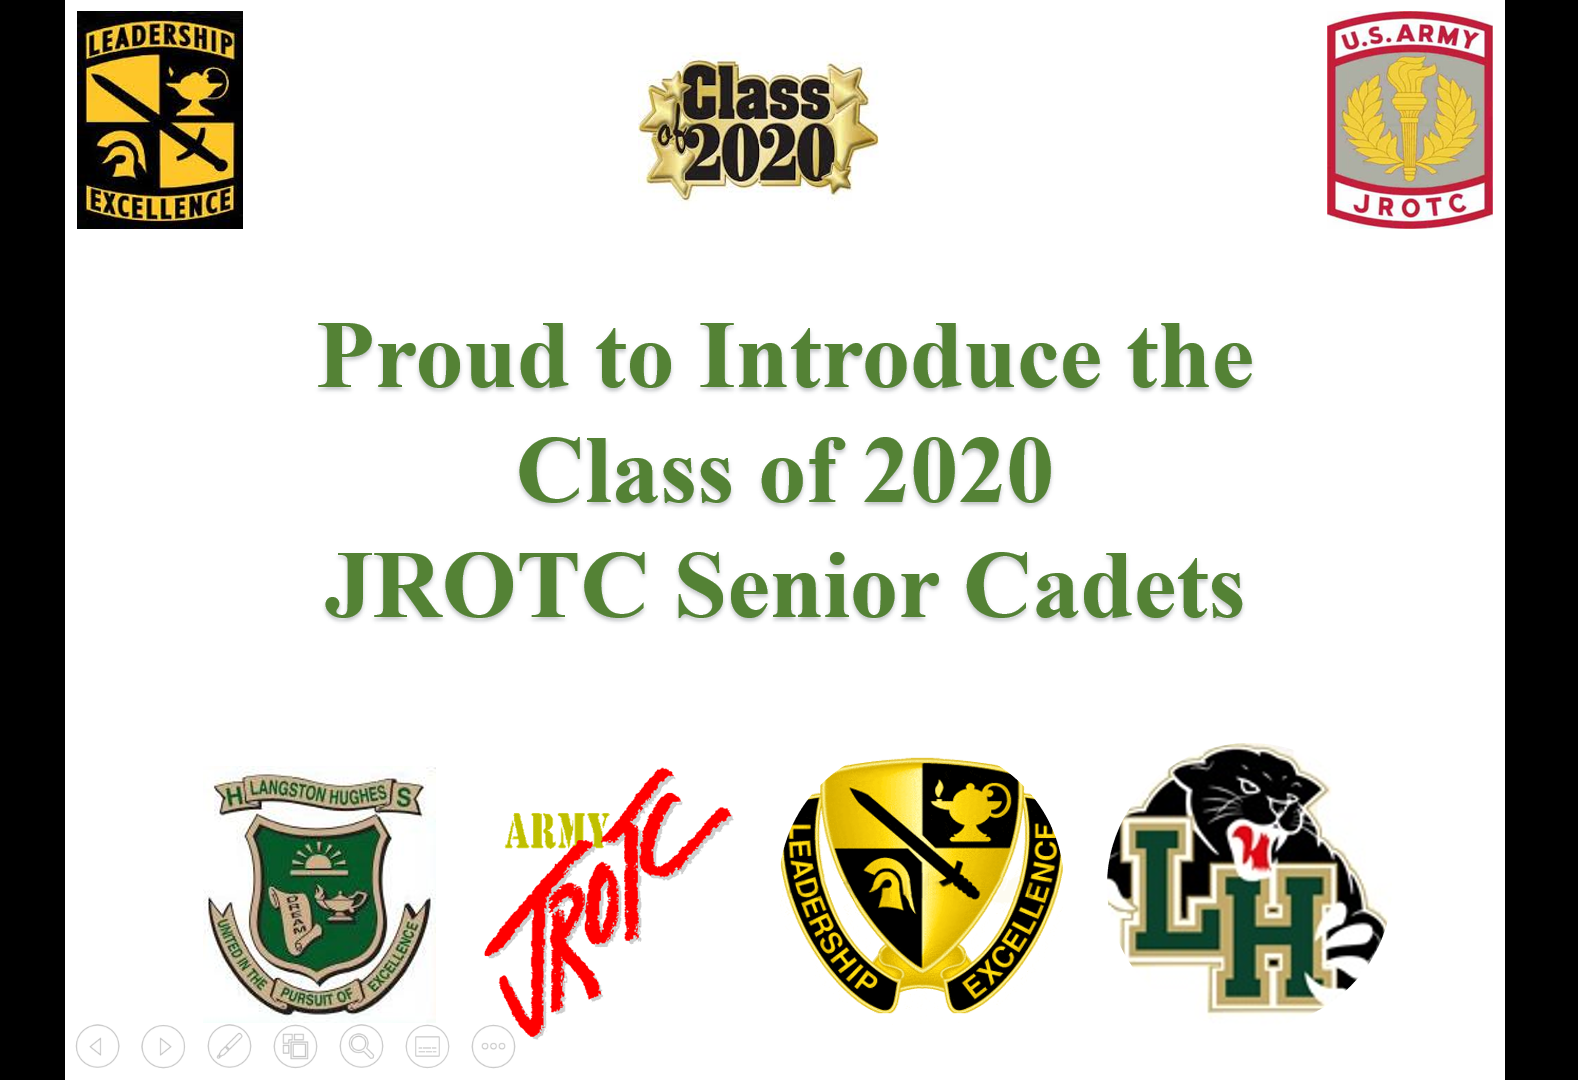 JROTC Senior Tribute - Click below to view the Power Point Tribute